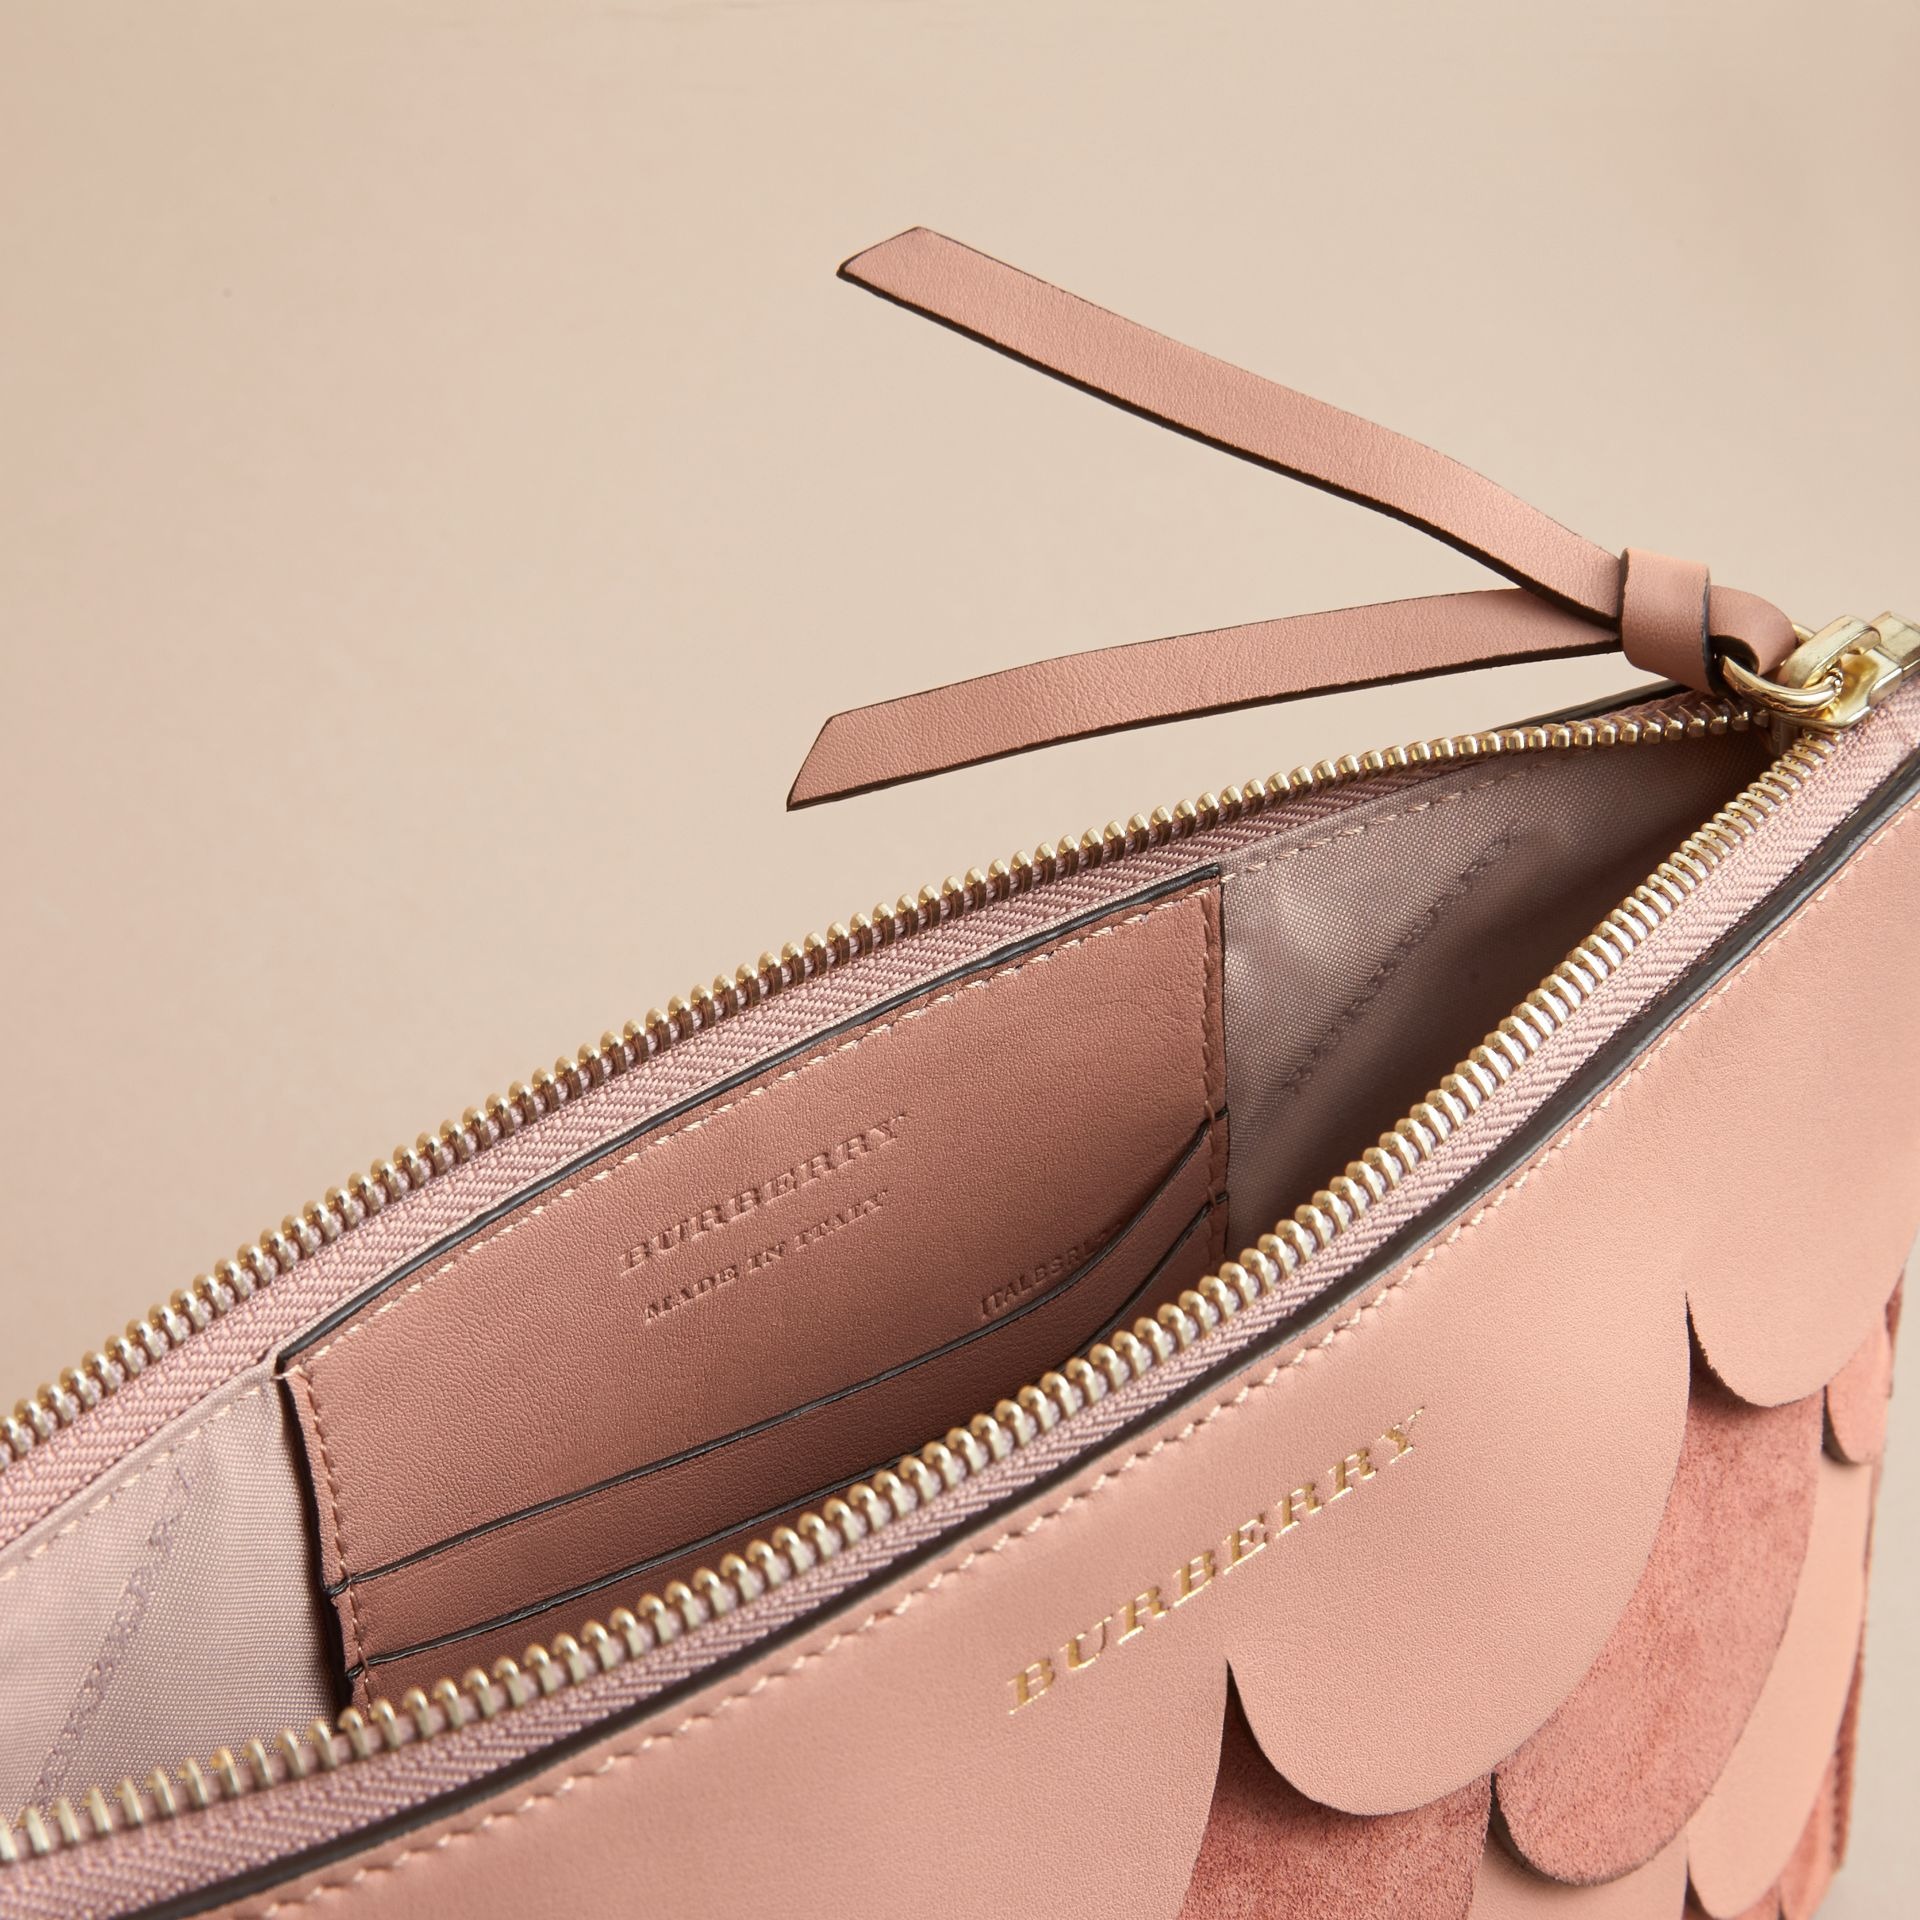 Two-tone Scalloped Leather and Suede Clutch Bag in Ash Rose - Women | Burberry - gallery image 5